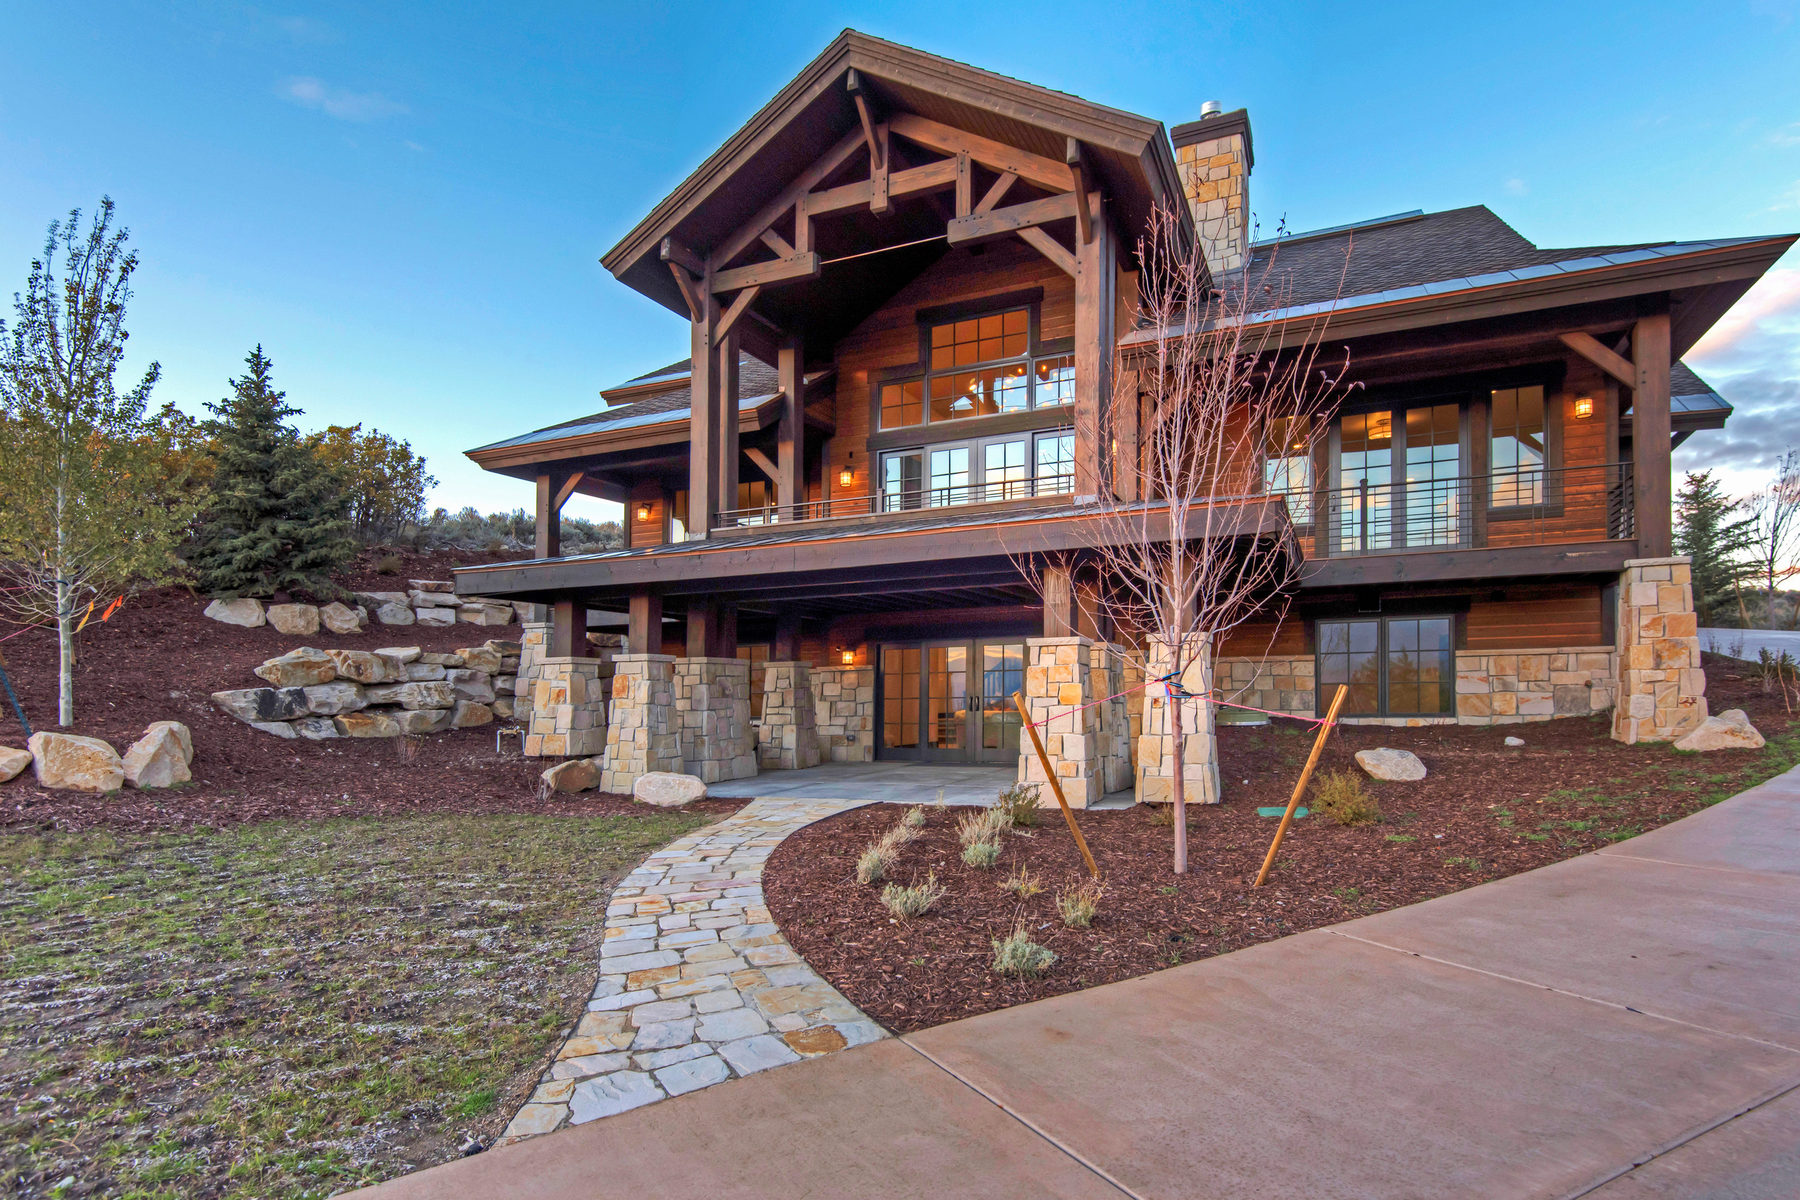 Single Family Home for Sale at Promontory New Construction 8936 N Mountain Crest Rd Park City, Utah, 84098 United States